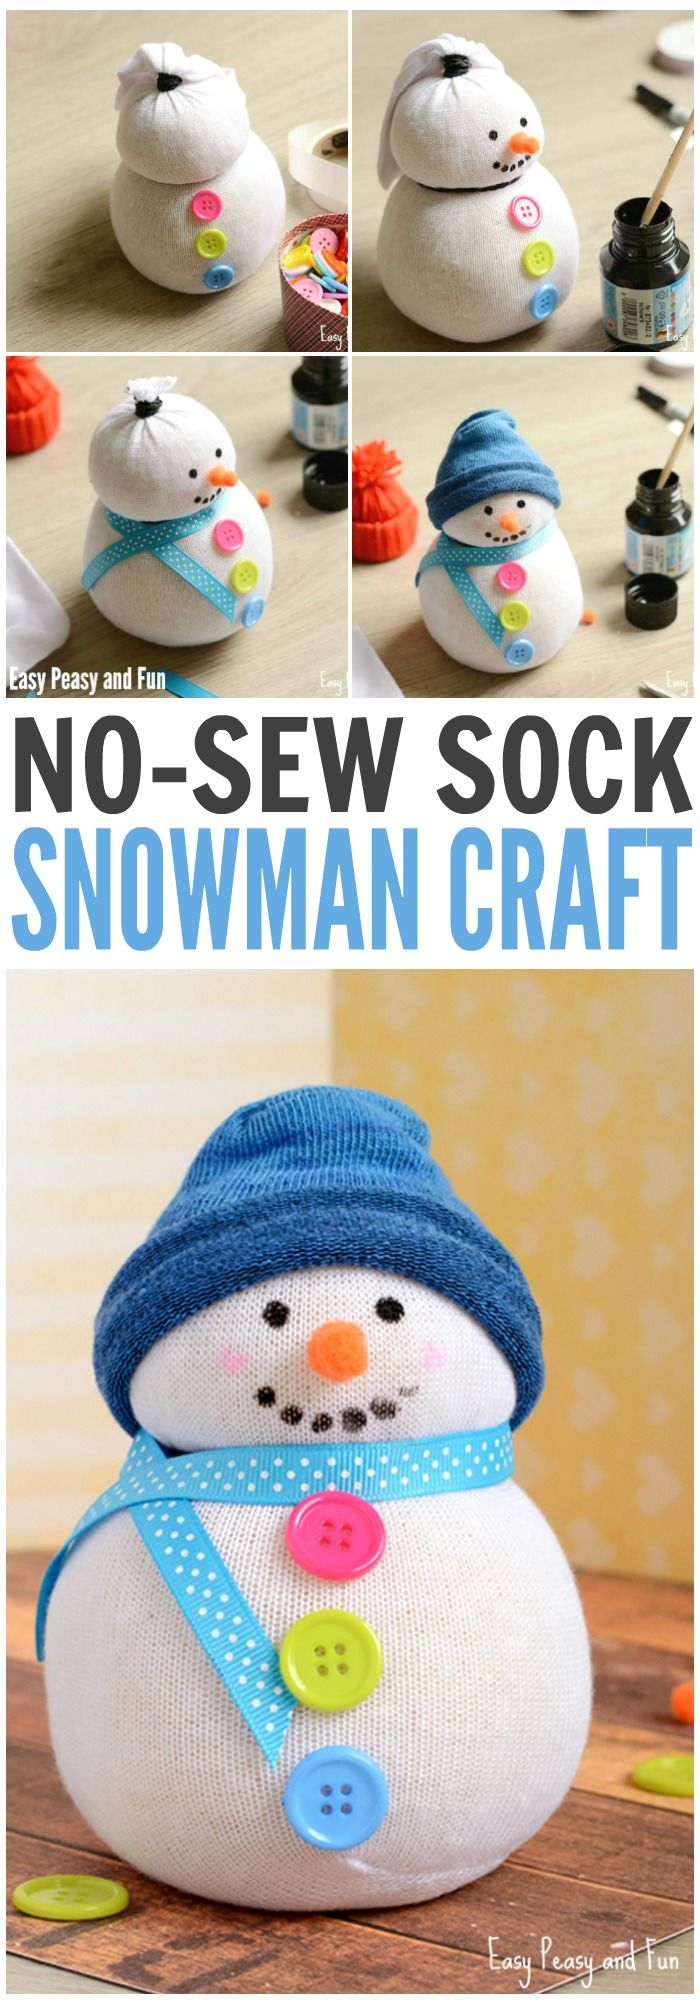 No sew sock snowman craft sock snowman snowman crafts Christmas crafts for kids to make at home